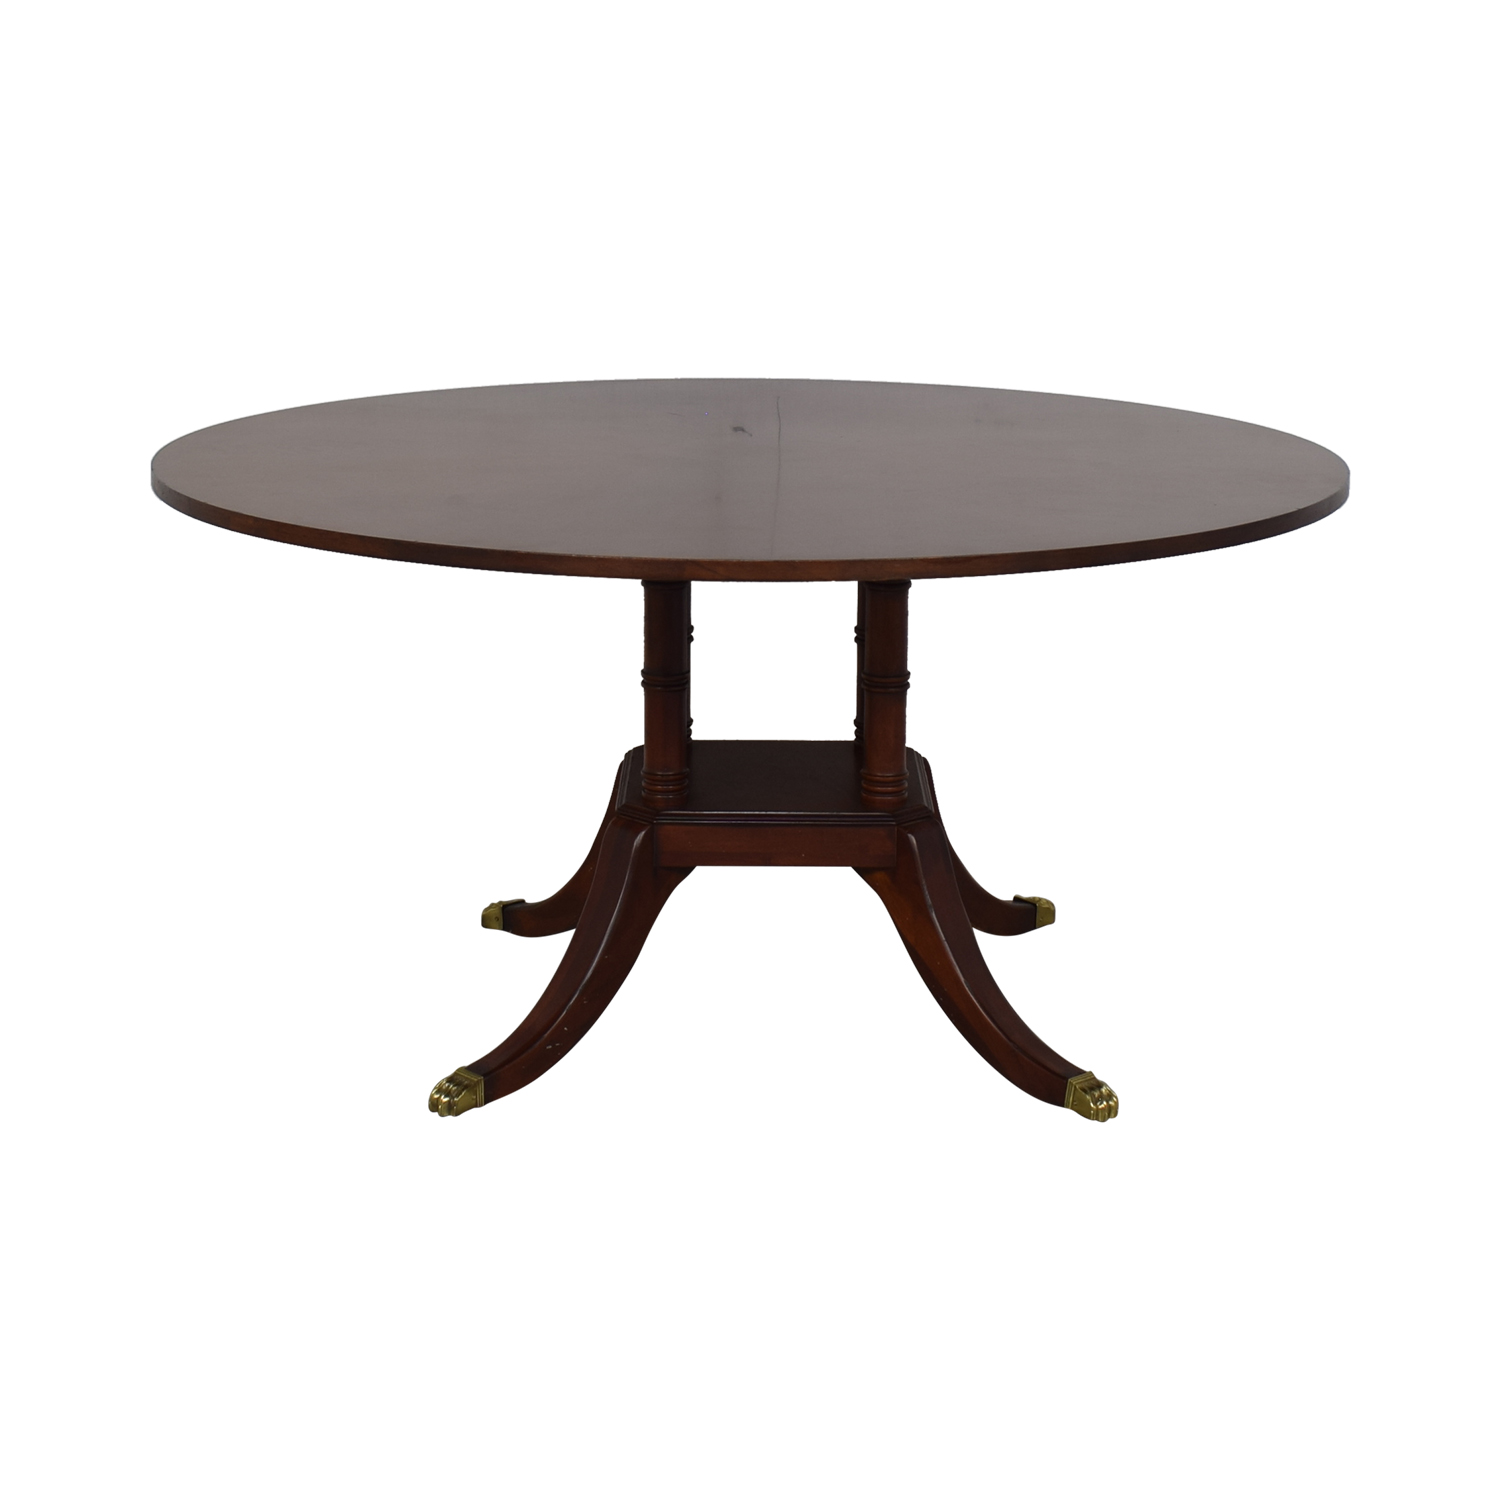 buy Drexel Heritage Round Dining Table Drexel Heritage Tables